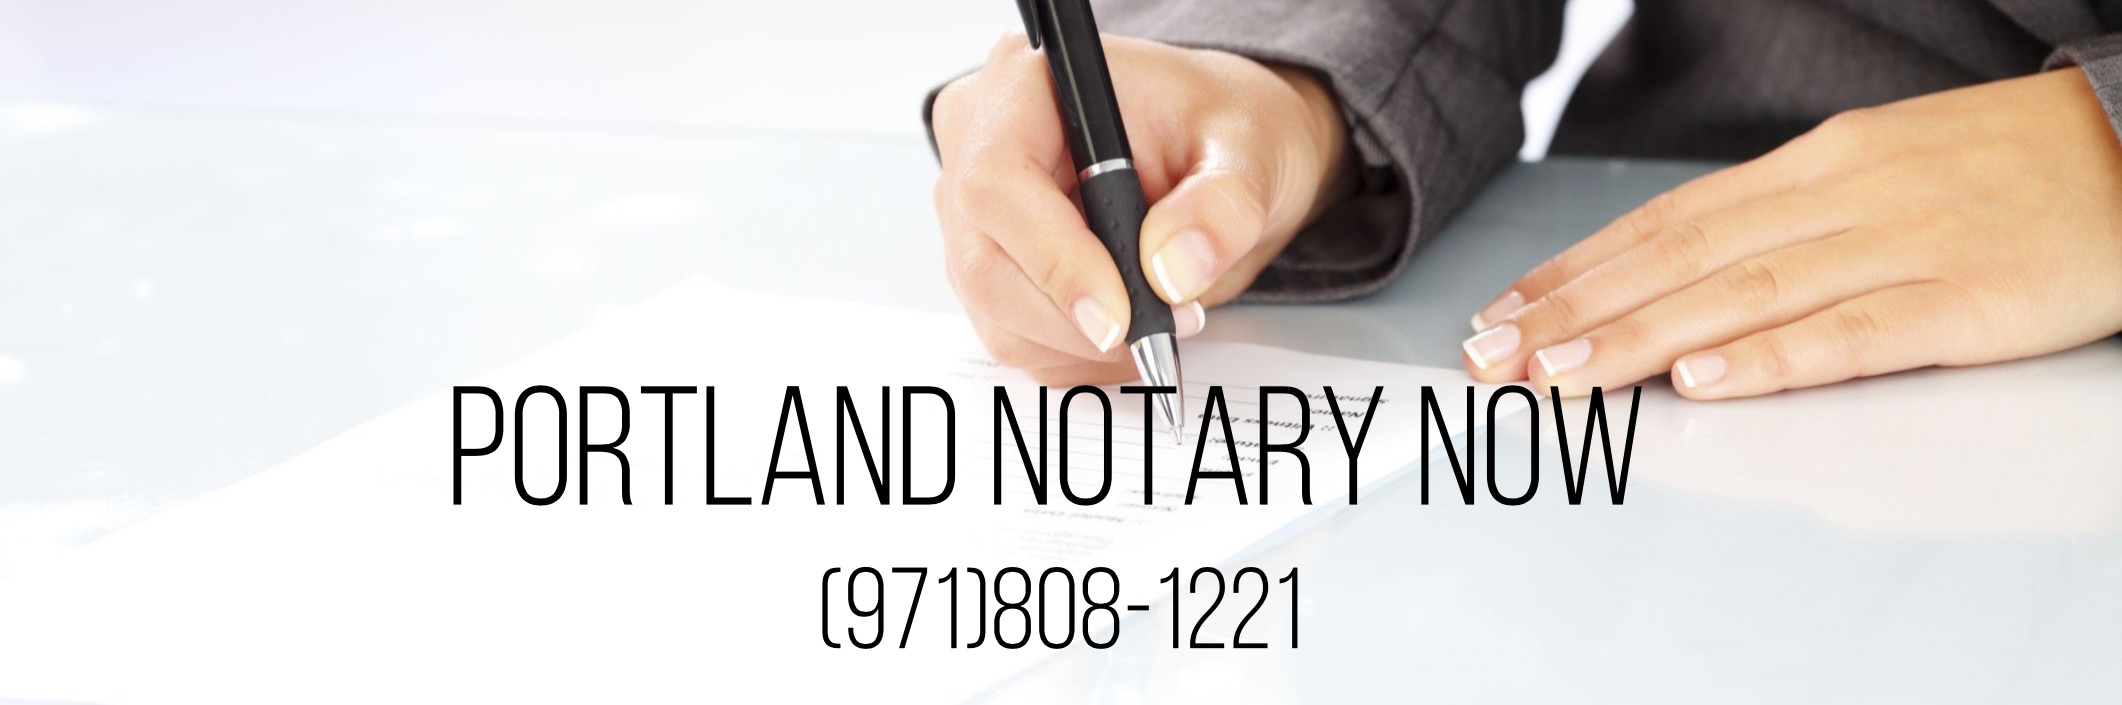 portland notary public now